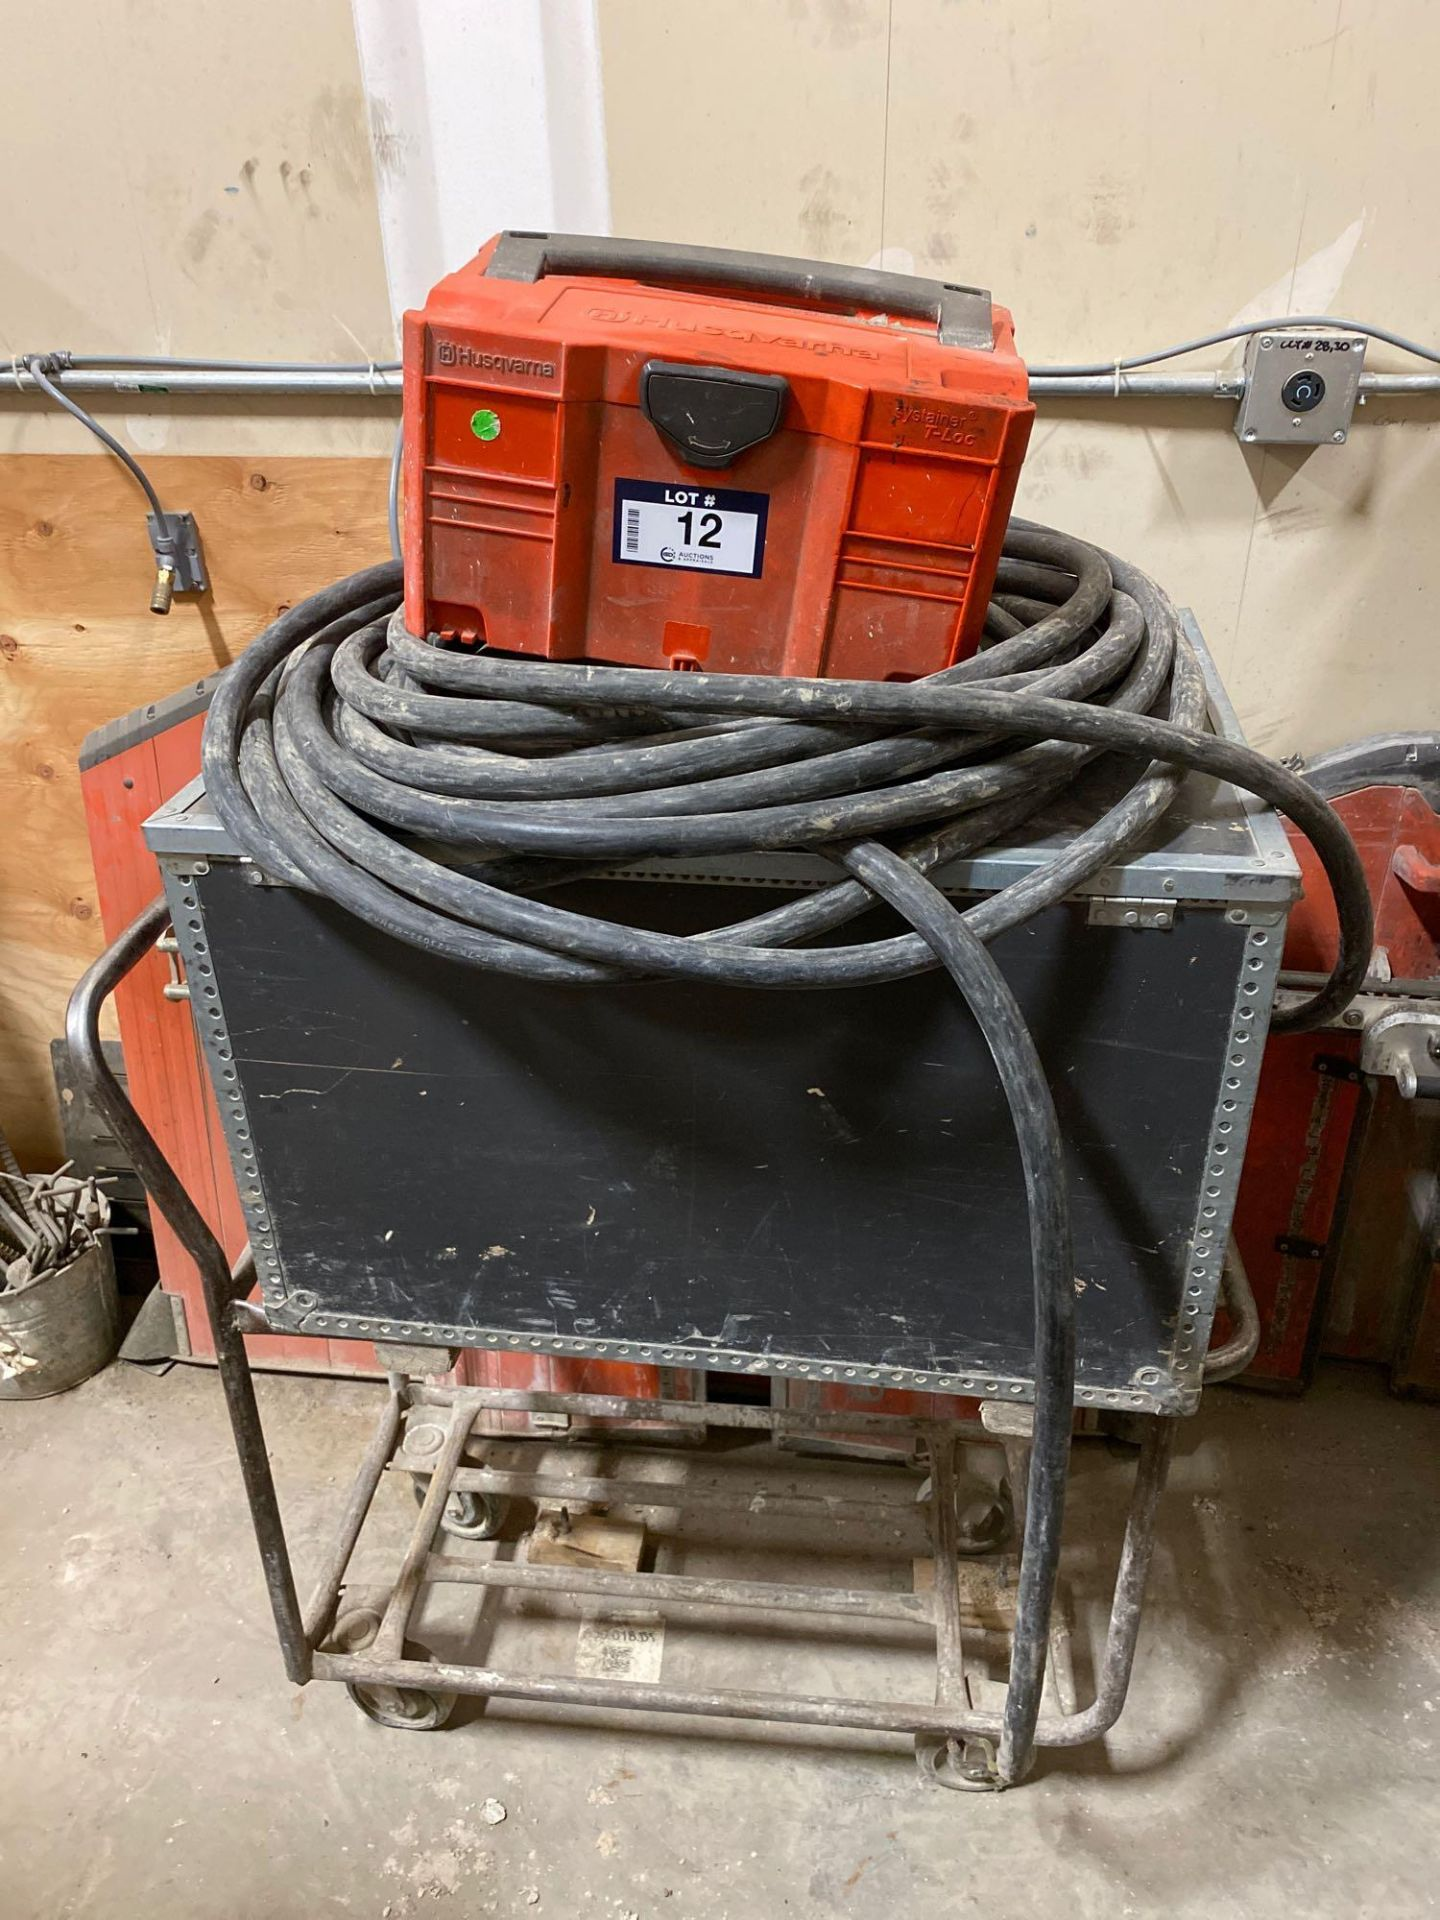 Husqvarna WS 440 HF Electric Wall Saw, Husqvarna PP 440 HF Power Pack, Track System, Blade Guards, e - Image 6 of 17